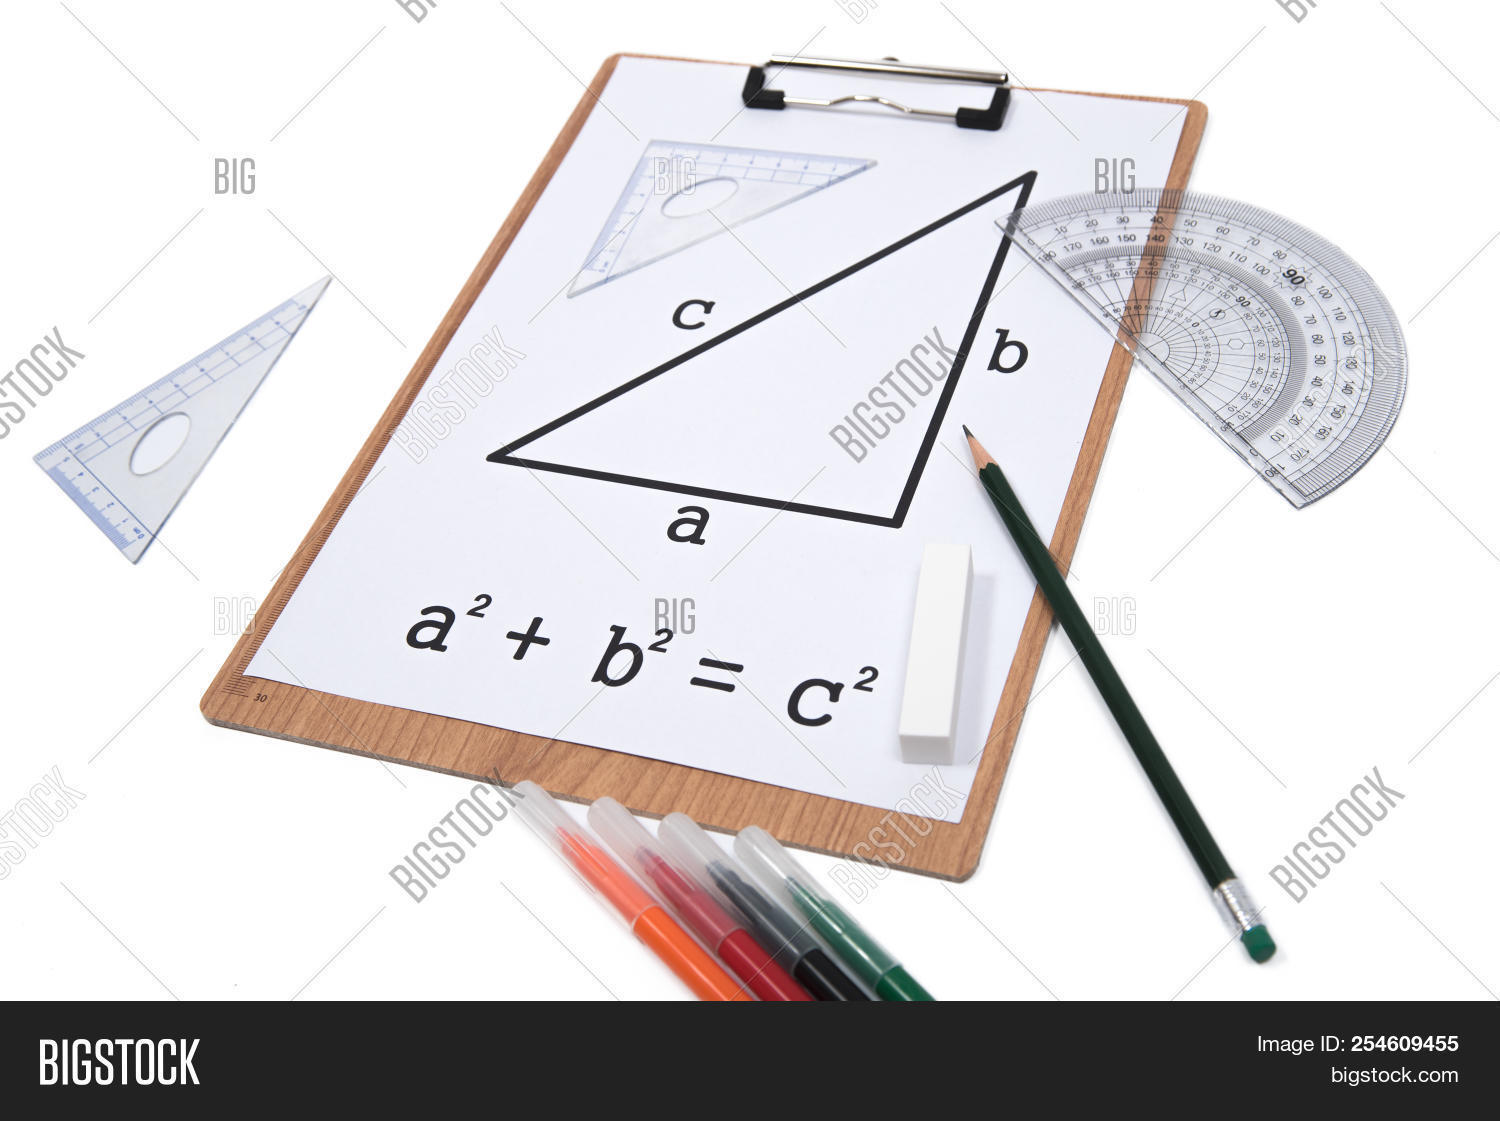 Writing,algebra,background,basic,black,blackboard,board,chalk,chalkboard,class,clipboard,concept,drawing,education,equation,eraser,formula,geometric,geometry,homework,hypotenuse,knowledge,learn,lesson,math,mathematical,mathematician,mathematics,notebook,number,pattern,pencil,protractor,prove,pythagoras,pythagorean,right,school,science,space,square,student,study,studying,teach,teacher,texture,theorem,triangle,white